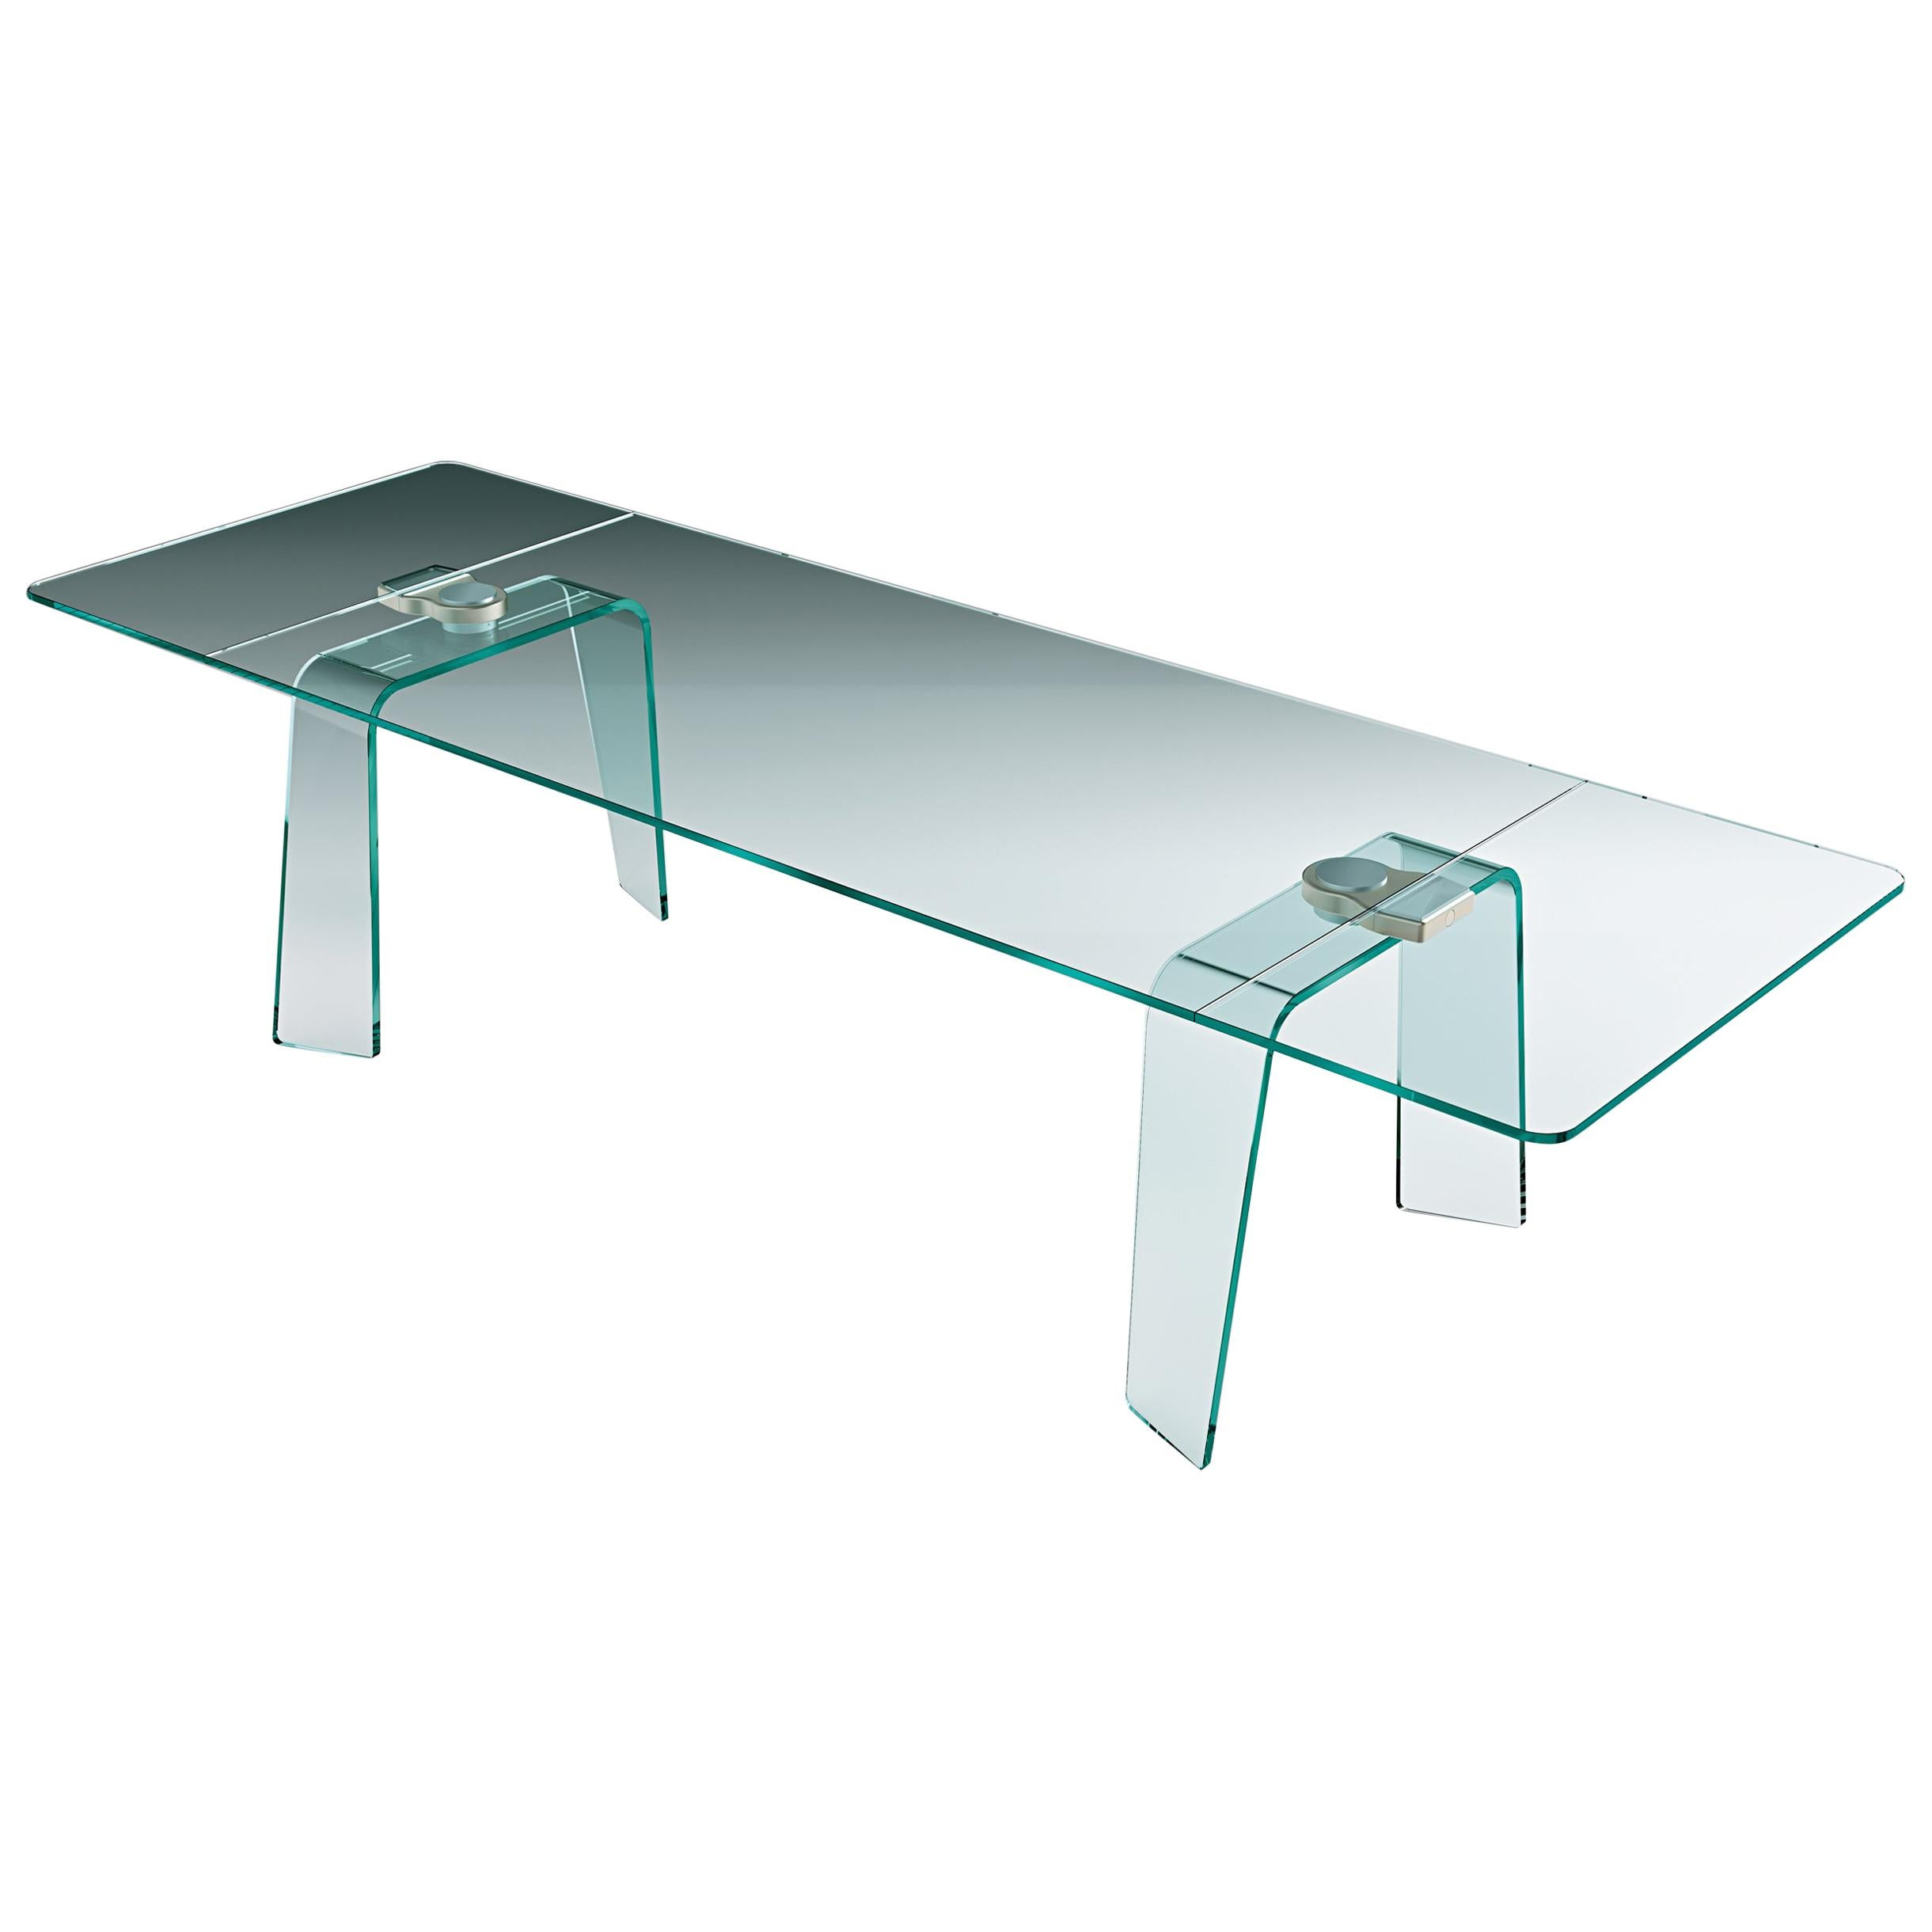 Fiam Kayo KY/2010 Extendible Table in Tempered Glass, by Satyendra Pakhalé